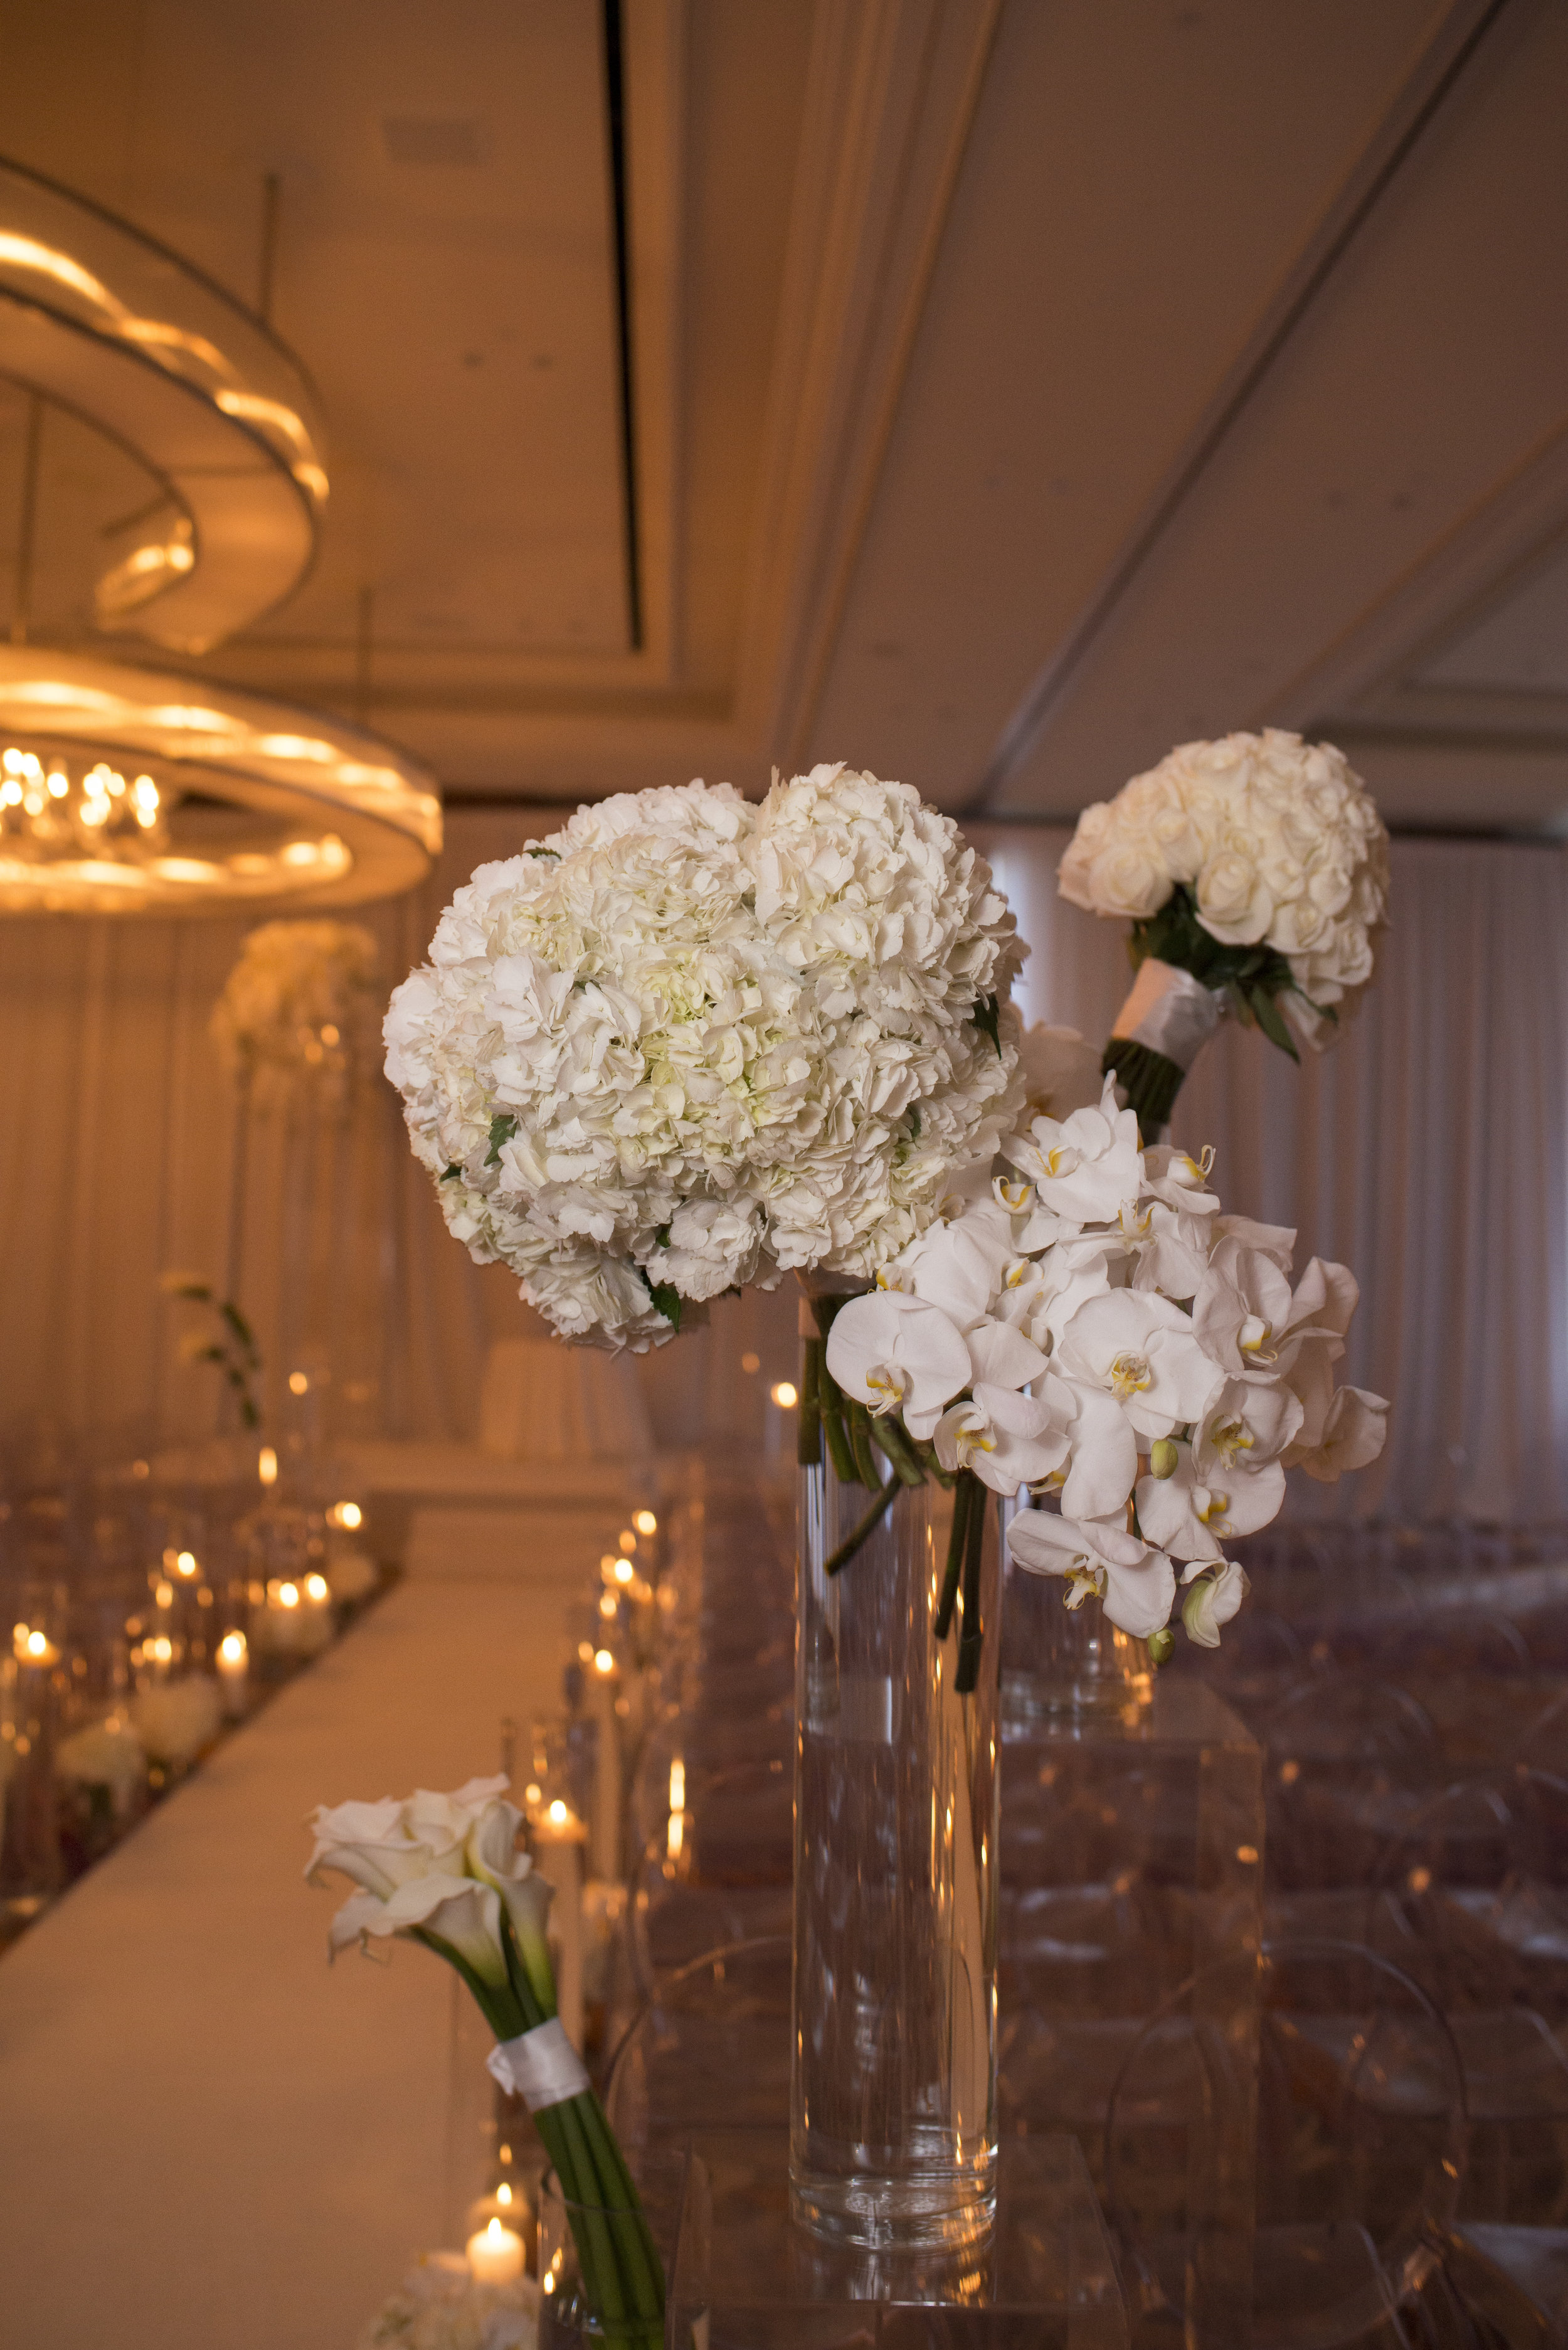 ivory wedding at the mandarin oriental. WEDDING PLANNING & EVENT DESIGN • Andrea Eppolito Events ,PHOTOGRAPHY • AltF Photography ,FLORAL AND DECOR DESIGN & PRODUCTION • Destinations by Design , CATERING • Mandarin Oriental Las Vegas , COCKTAILS •  The Grand Bevy , WEDDING GOWN •  Galia Lahav ,SHOES •  Jimmy Choo